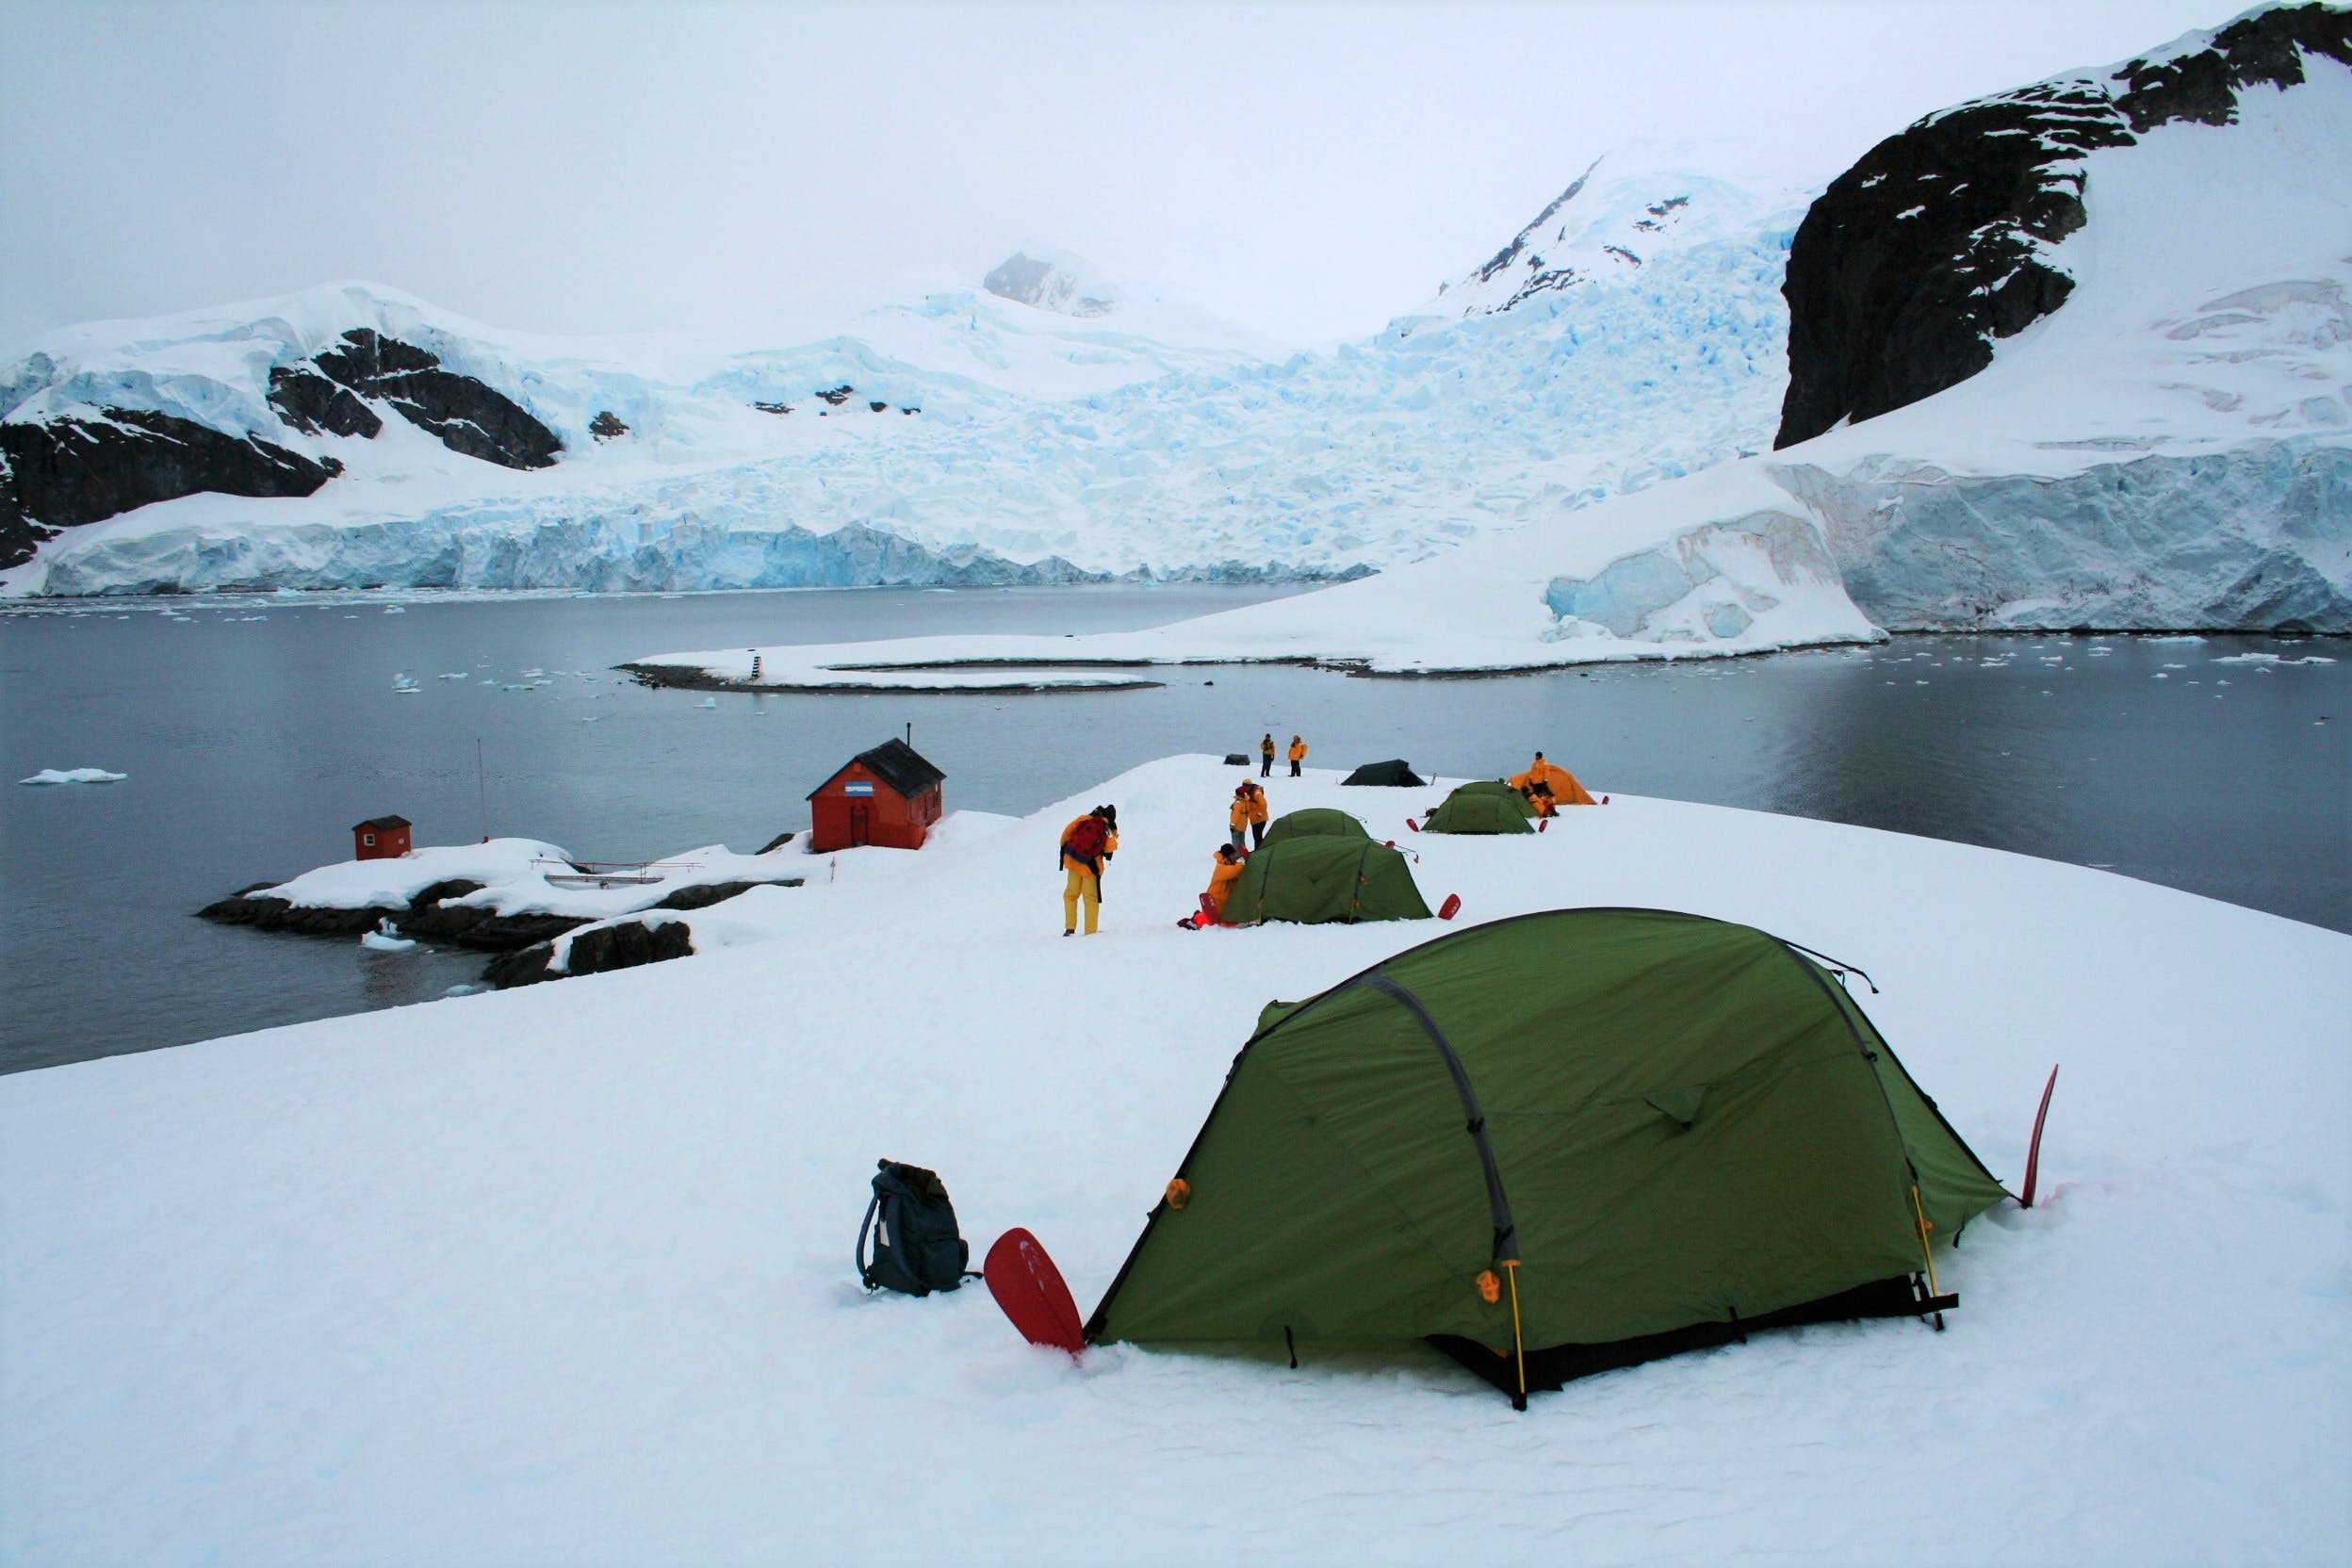 Green tents pitched in the snow on the Antarctic Peninsula